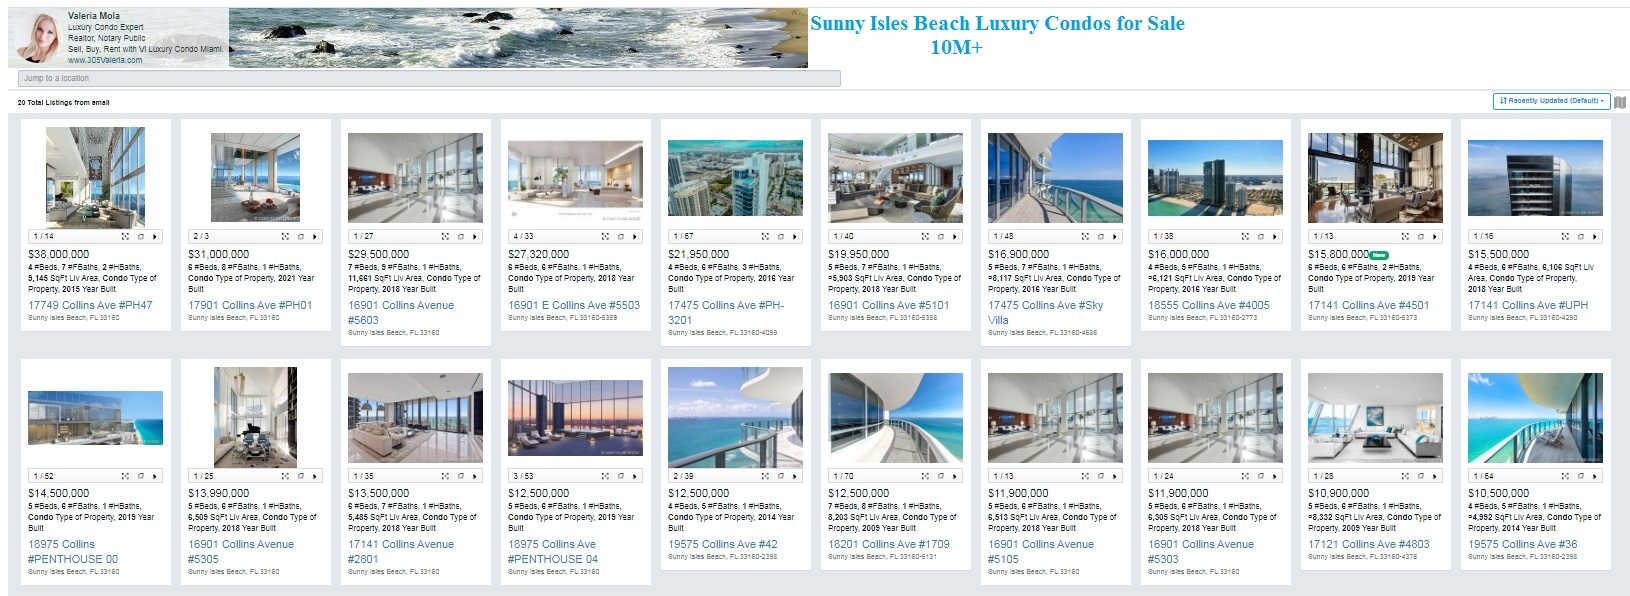 Sunny Isles Beach Luxury Condos for Sale 10 m and over